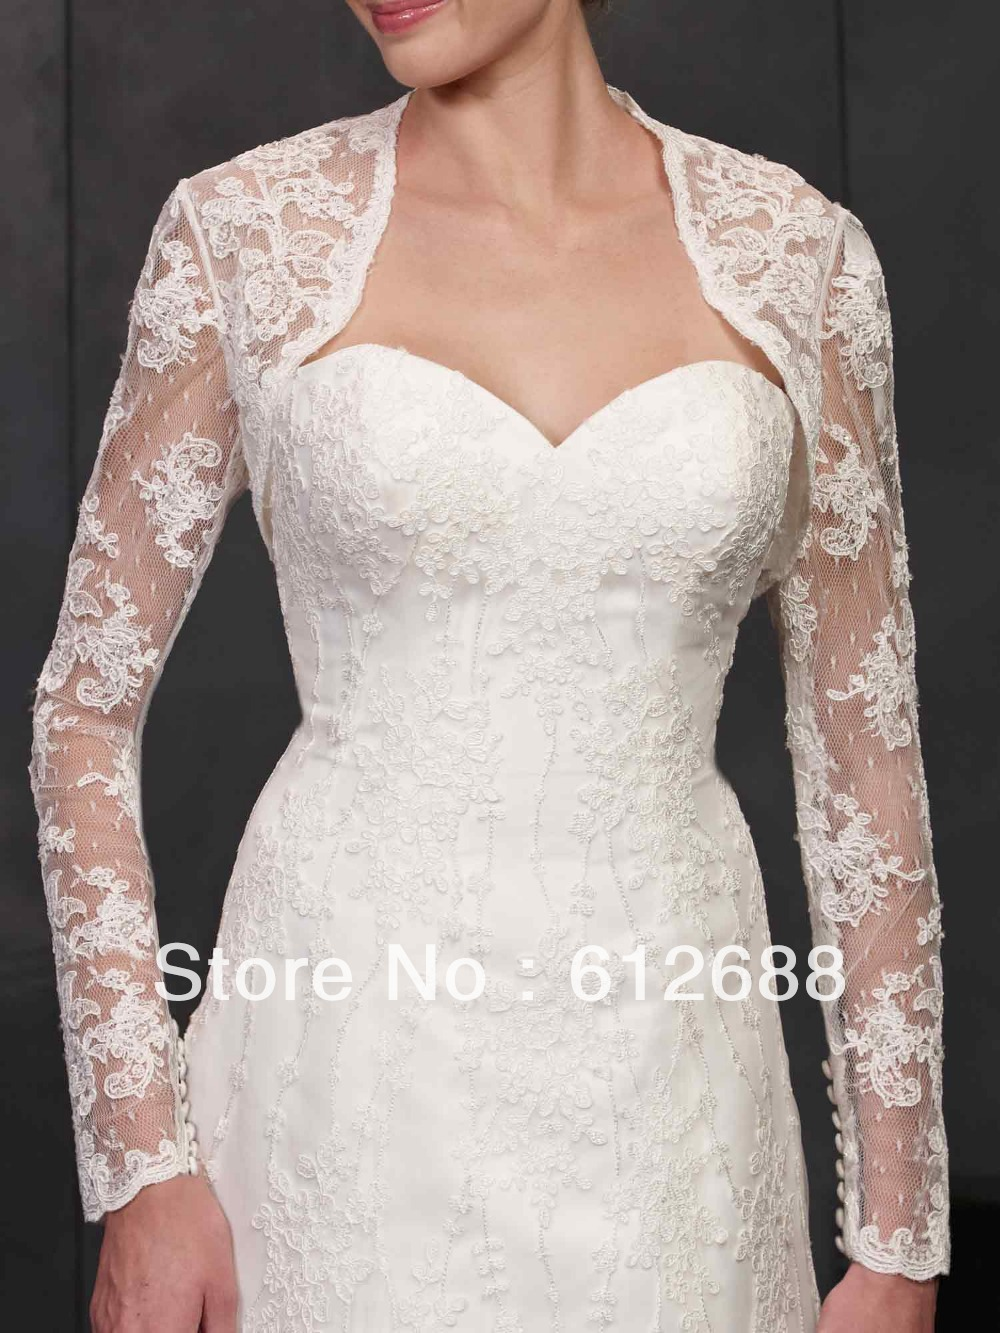 2014 new fashion lace pattern with appliques long sleeve for Wedding dress long sleeve lace jacket